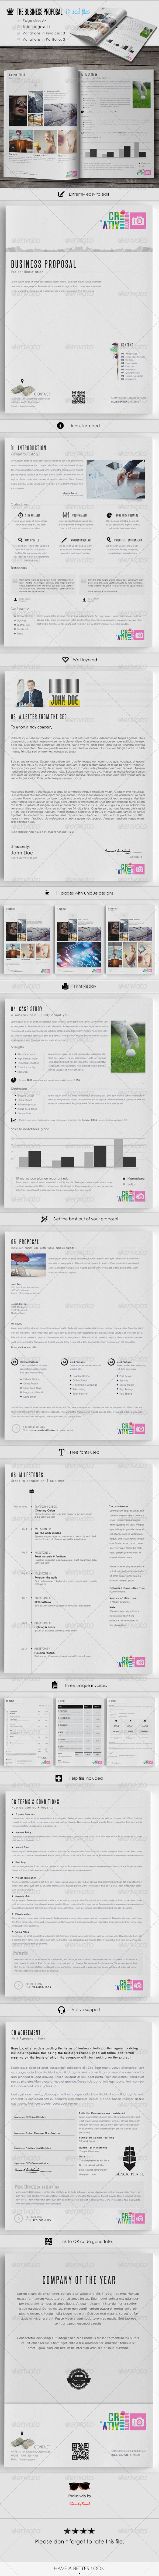 The Business Proposal - Proposals & Invoices Stationery